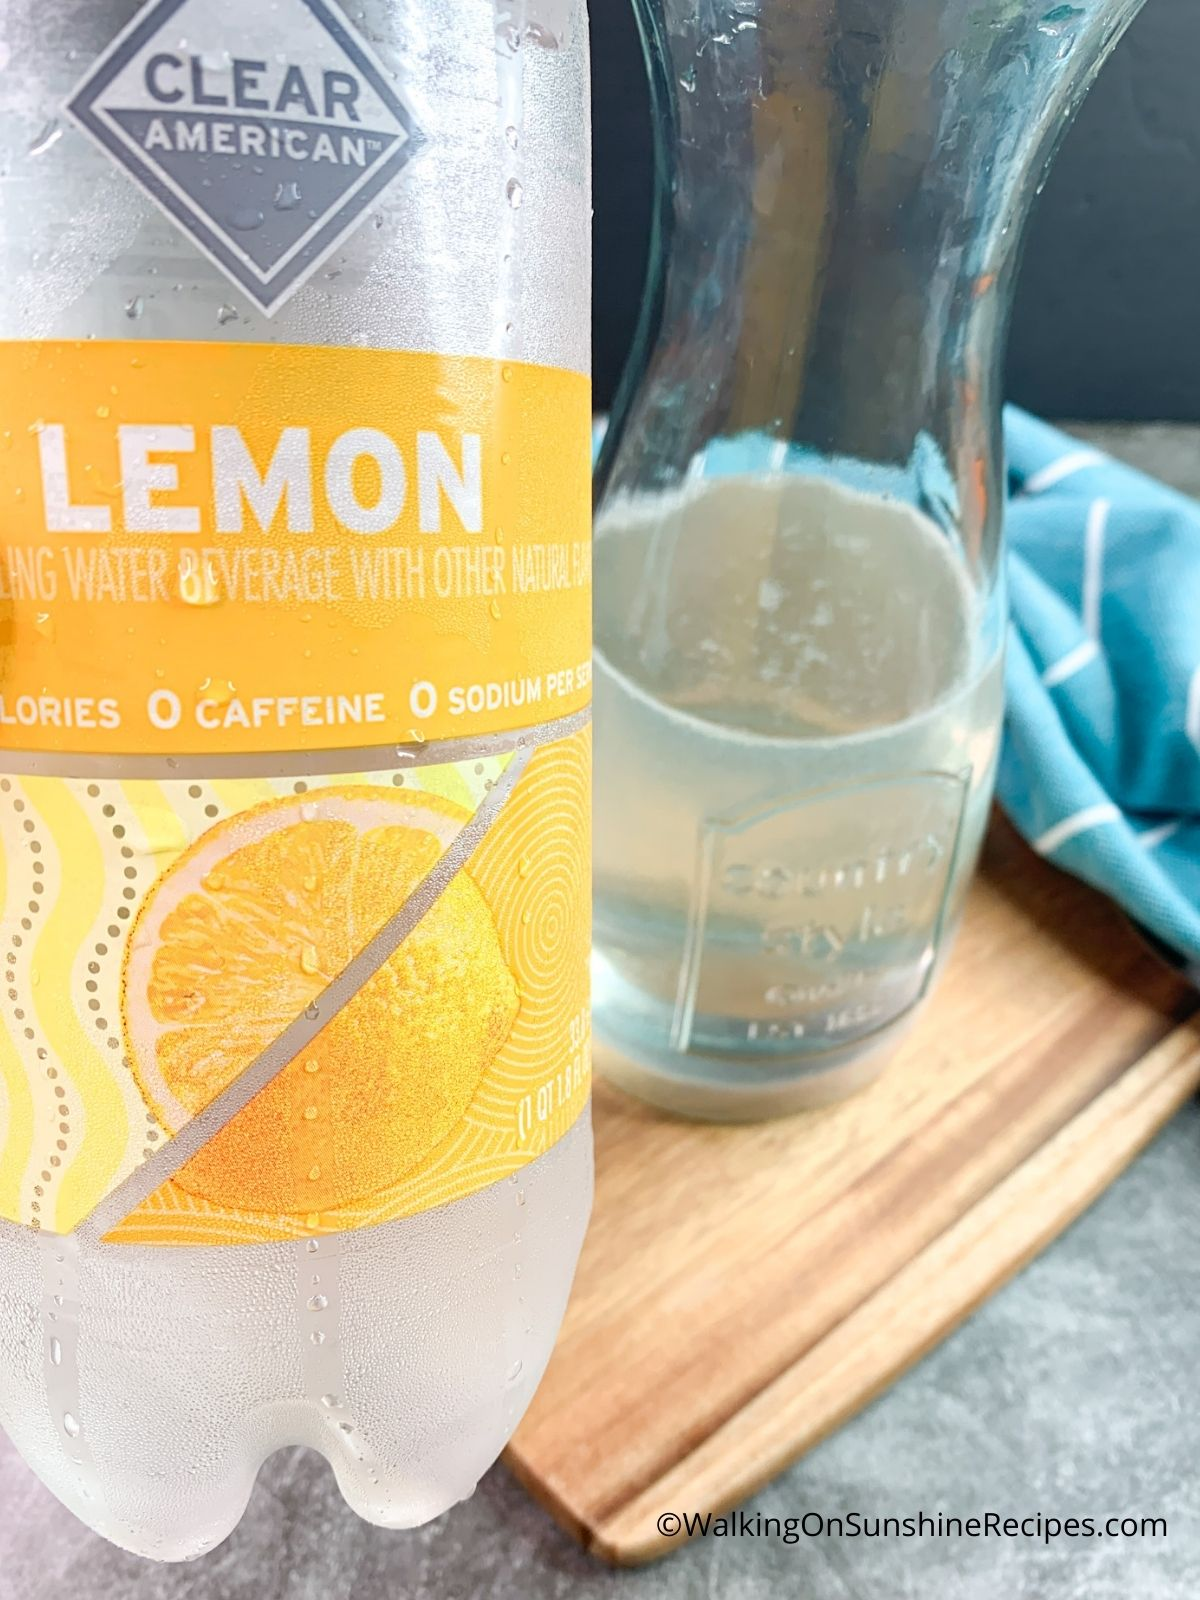 Add Lemon Sparkling Water to pitcher.